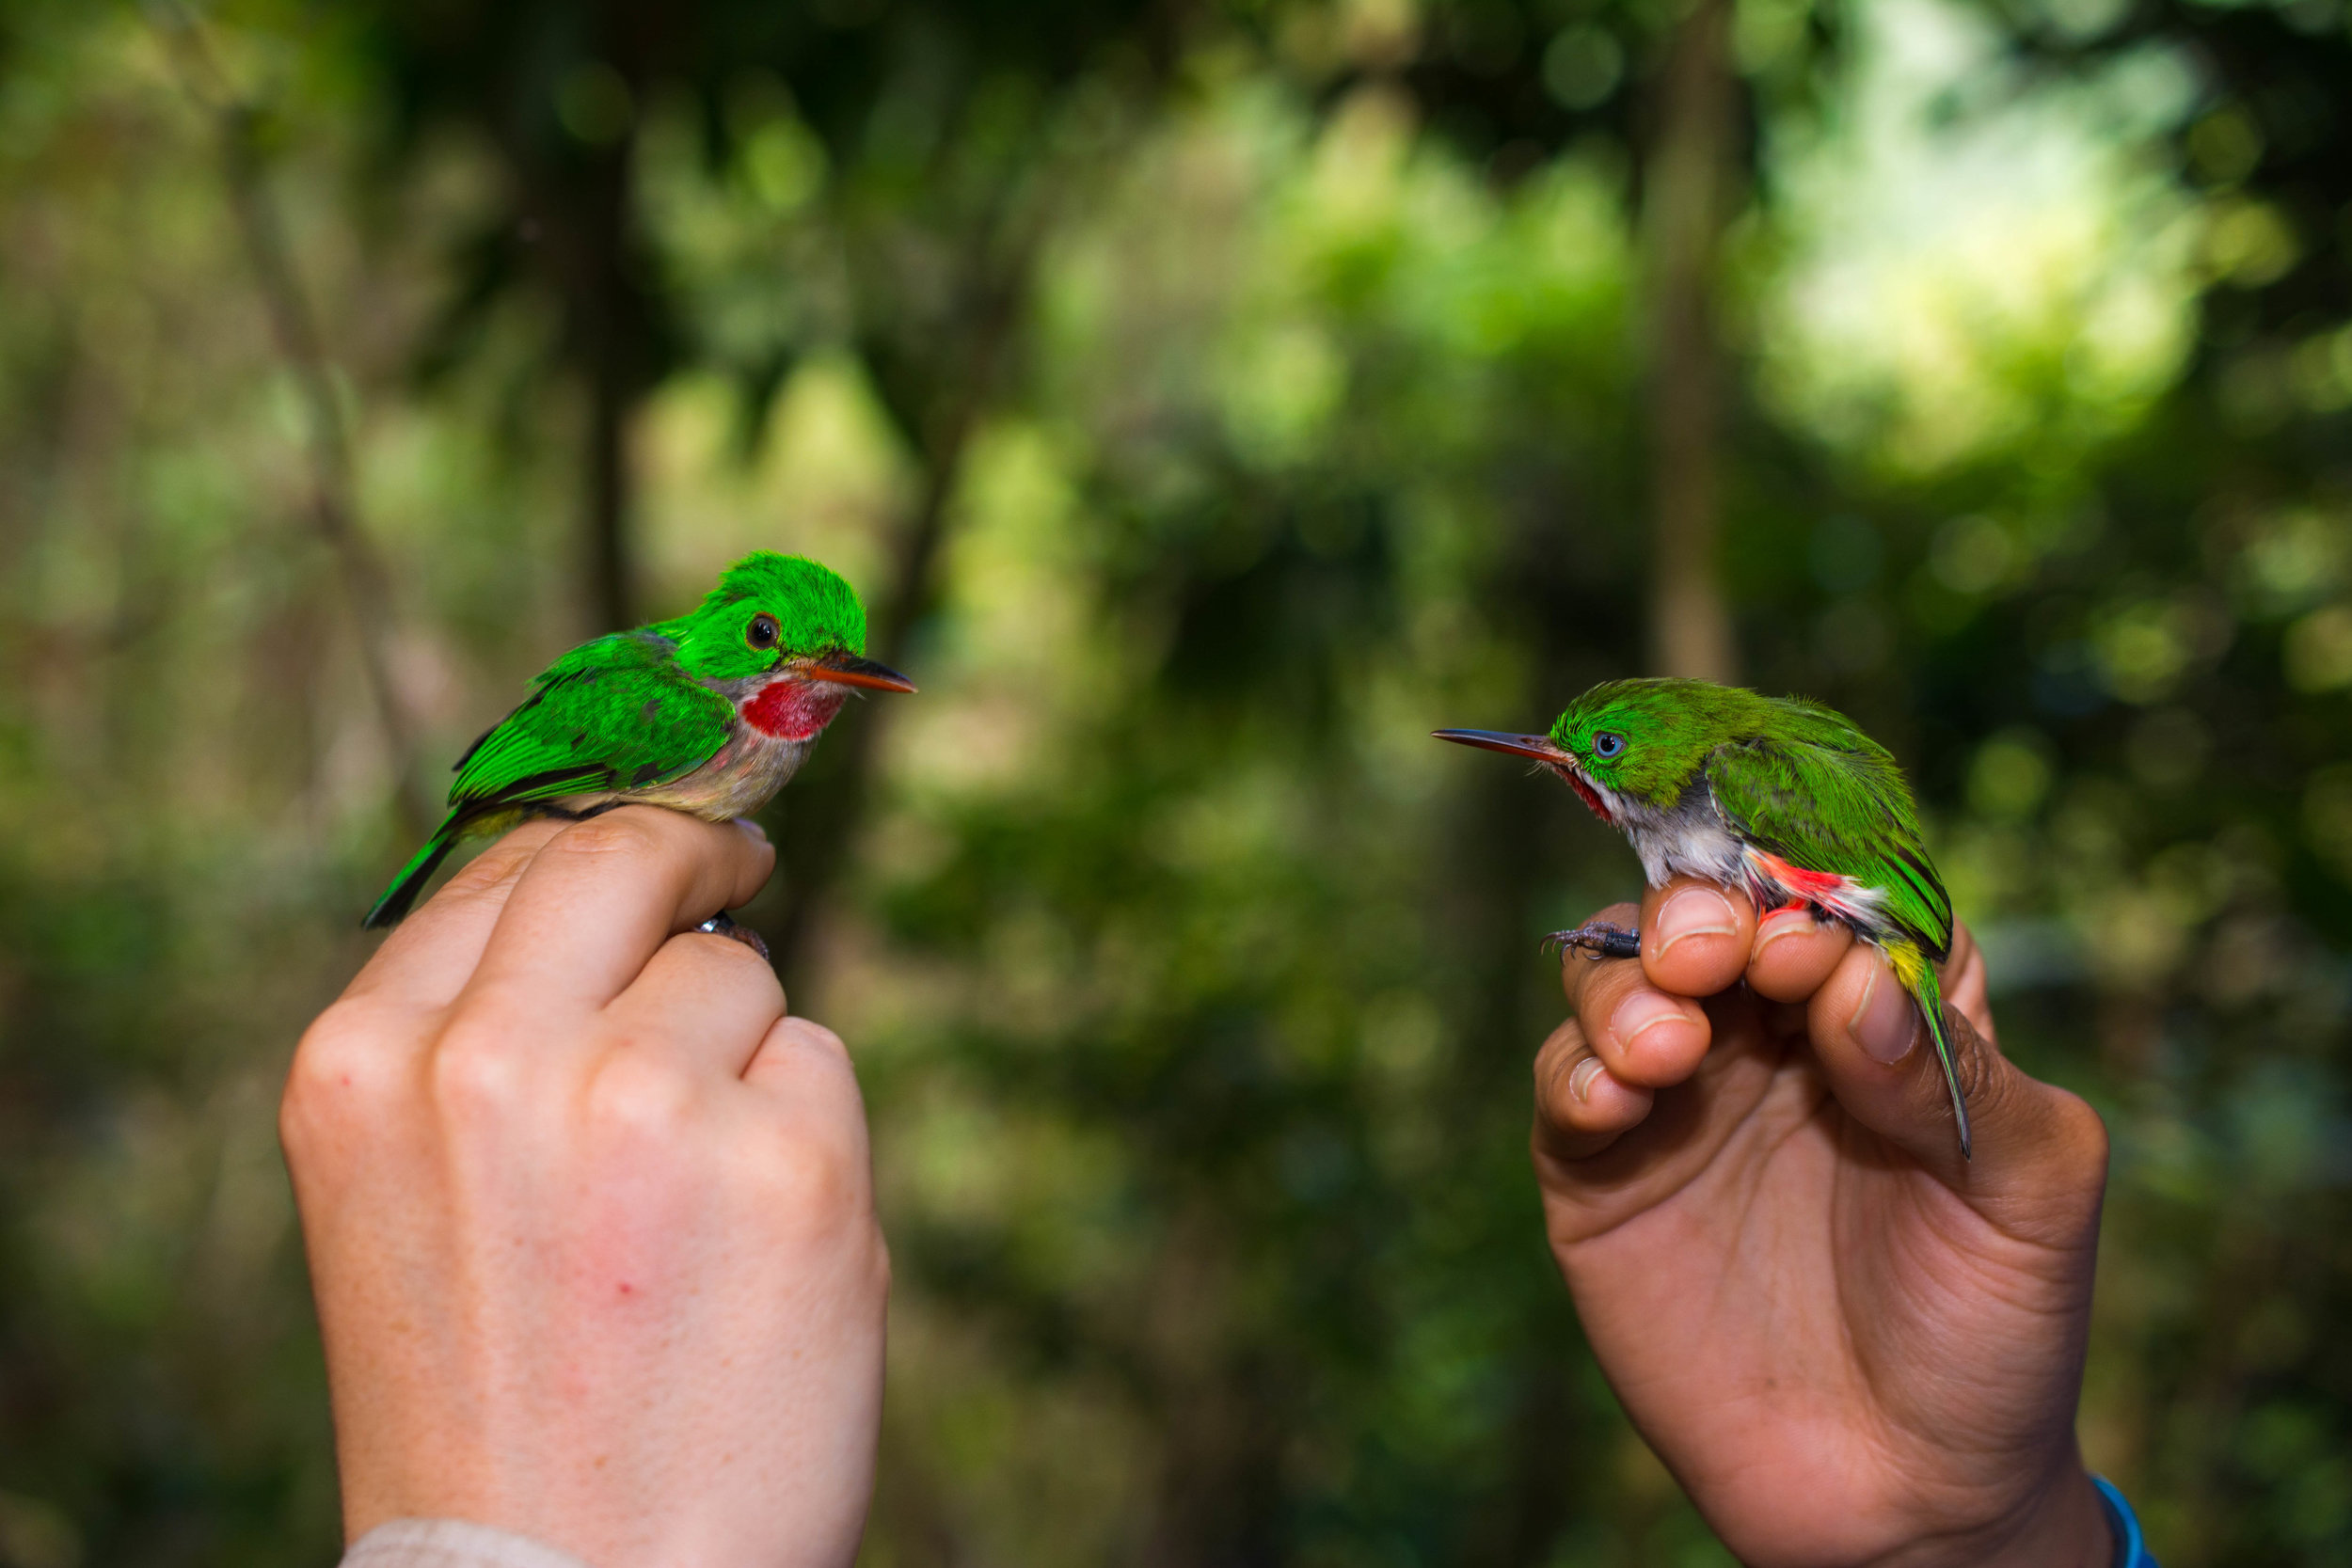 Broad-billed Tody (left) and Narrow-billed Tody (right) occur sympatrically in several regions of the Cordillera Central